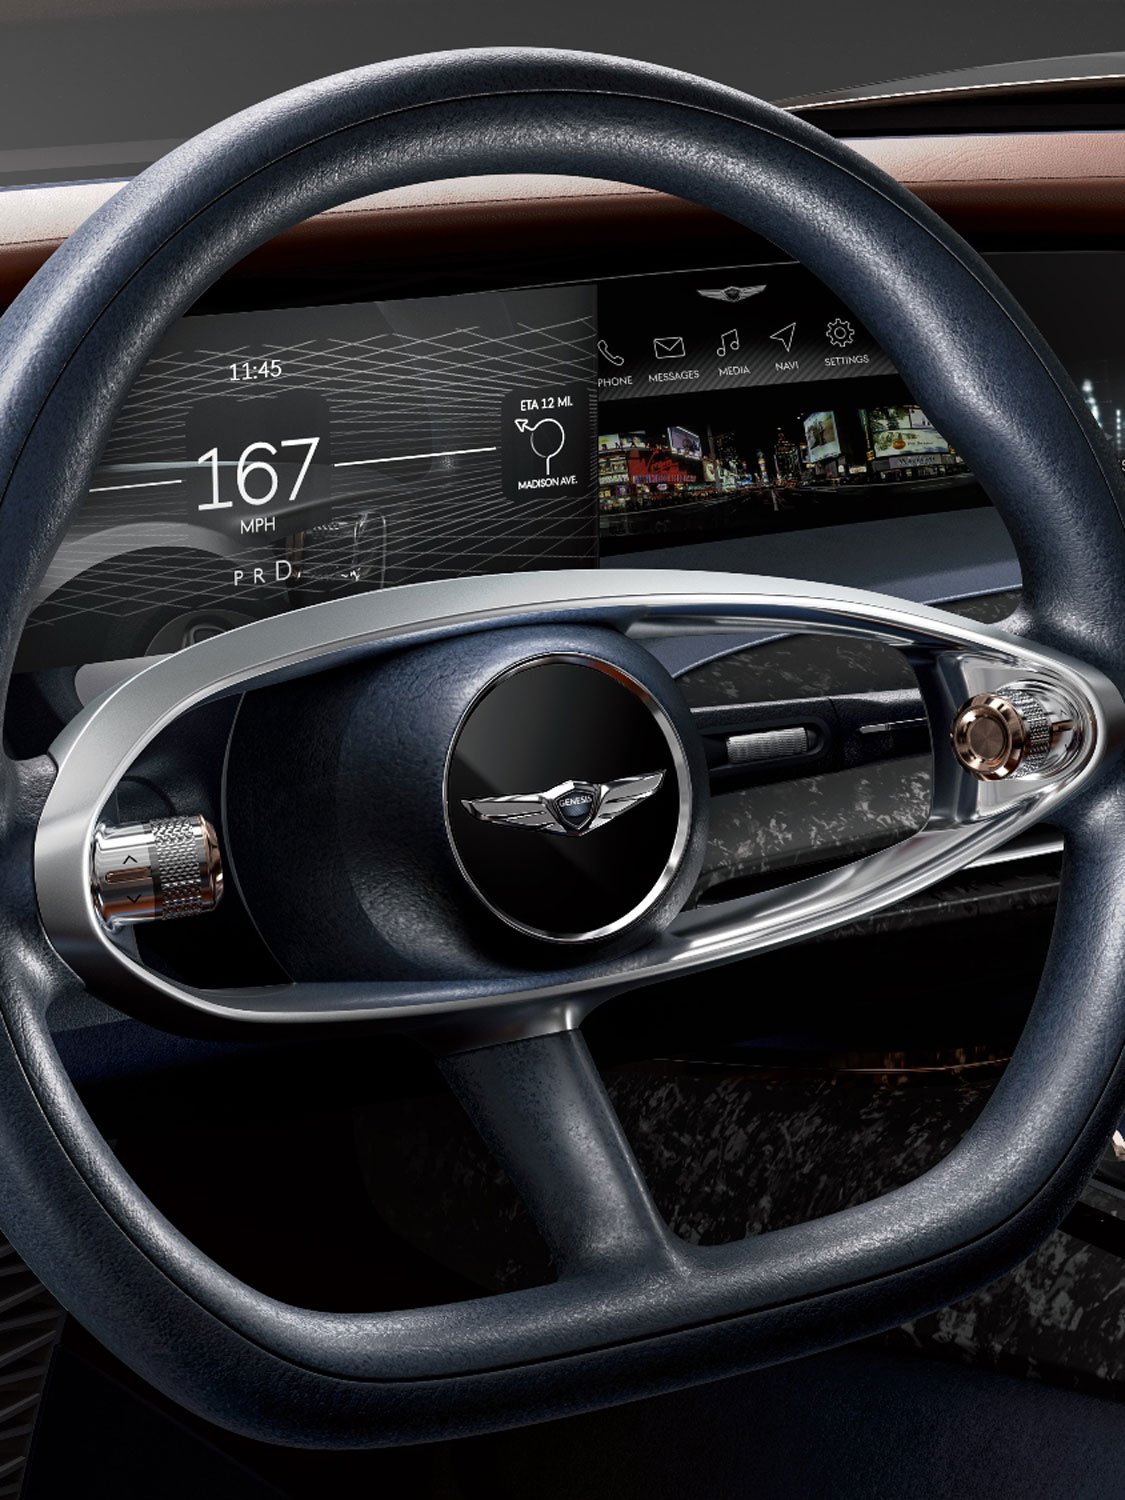 The_Ink_Collective_Creative_Content_Design_Agency_Paris_Sydney_Luxury_Editorial_CEO_Interview_Luxury_Cars_Cannes_Automobile_Hyundai_Motor_Company_Transport_Manfred_Fitzgerald_Genesis_Motors_24.jpg